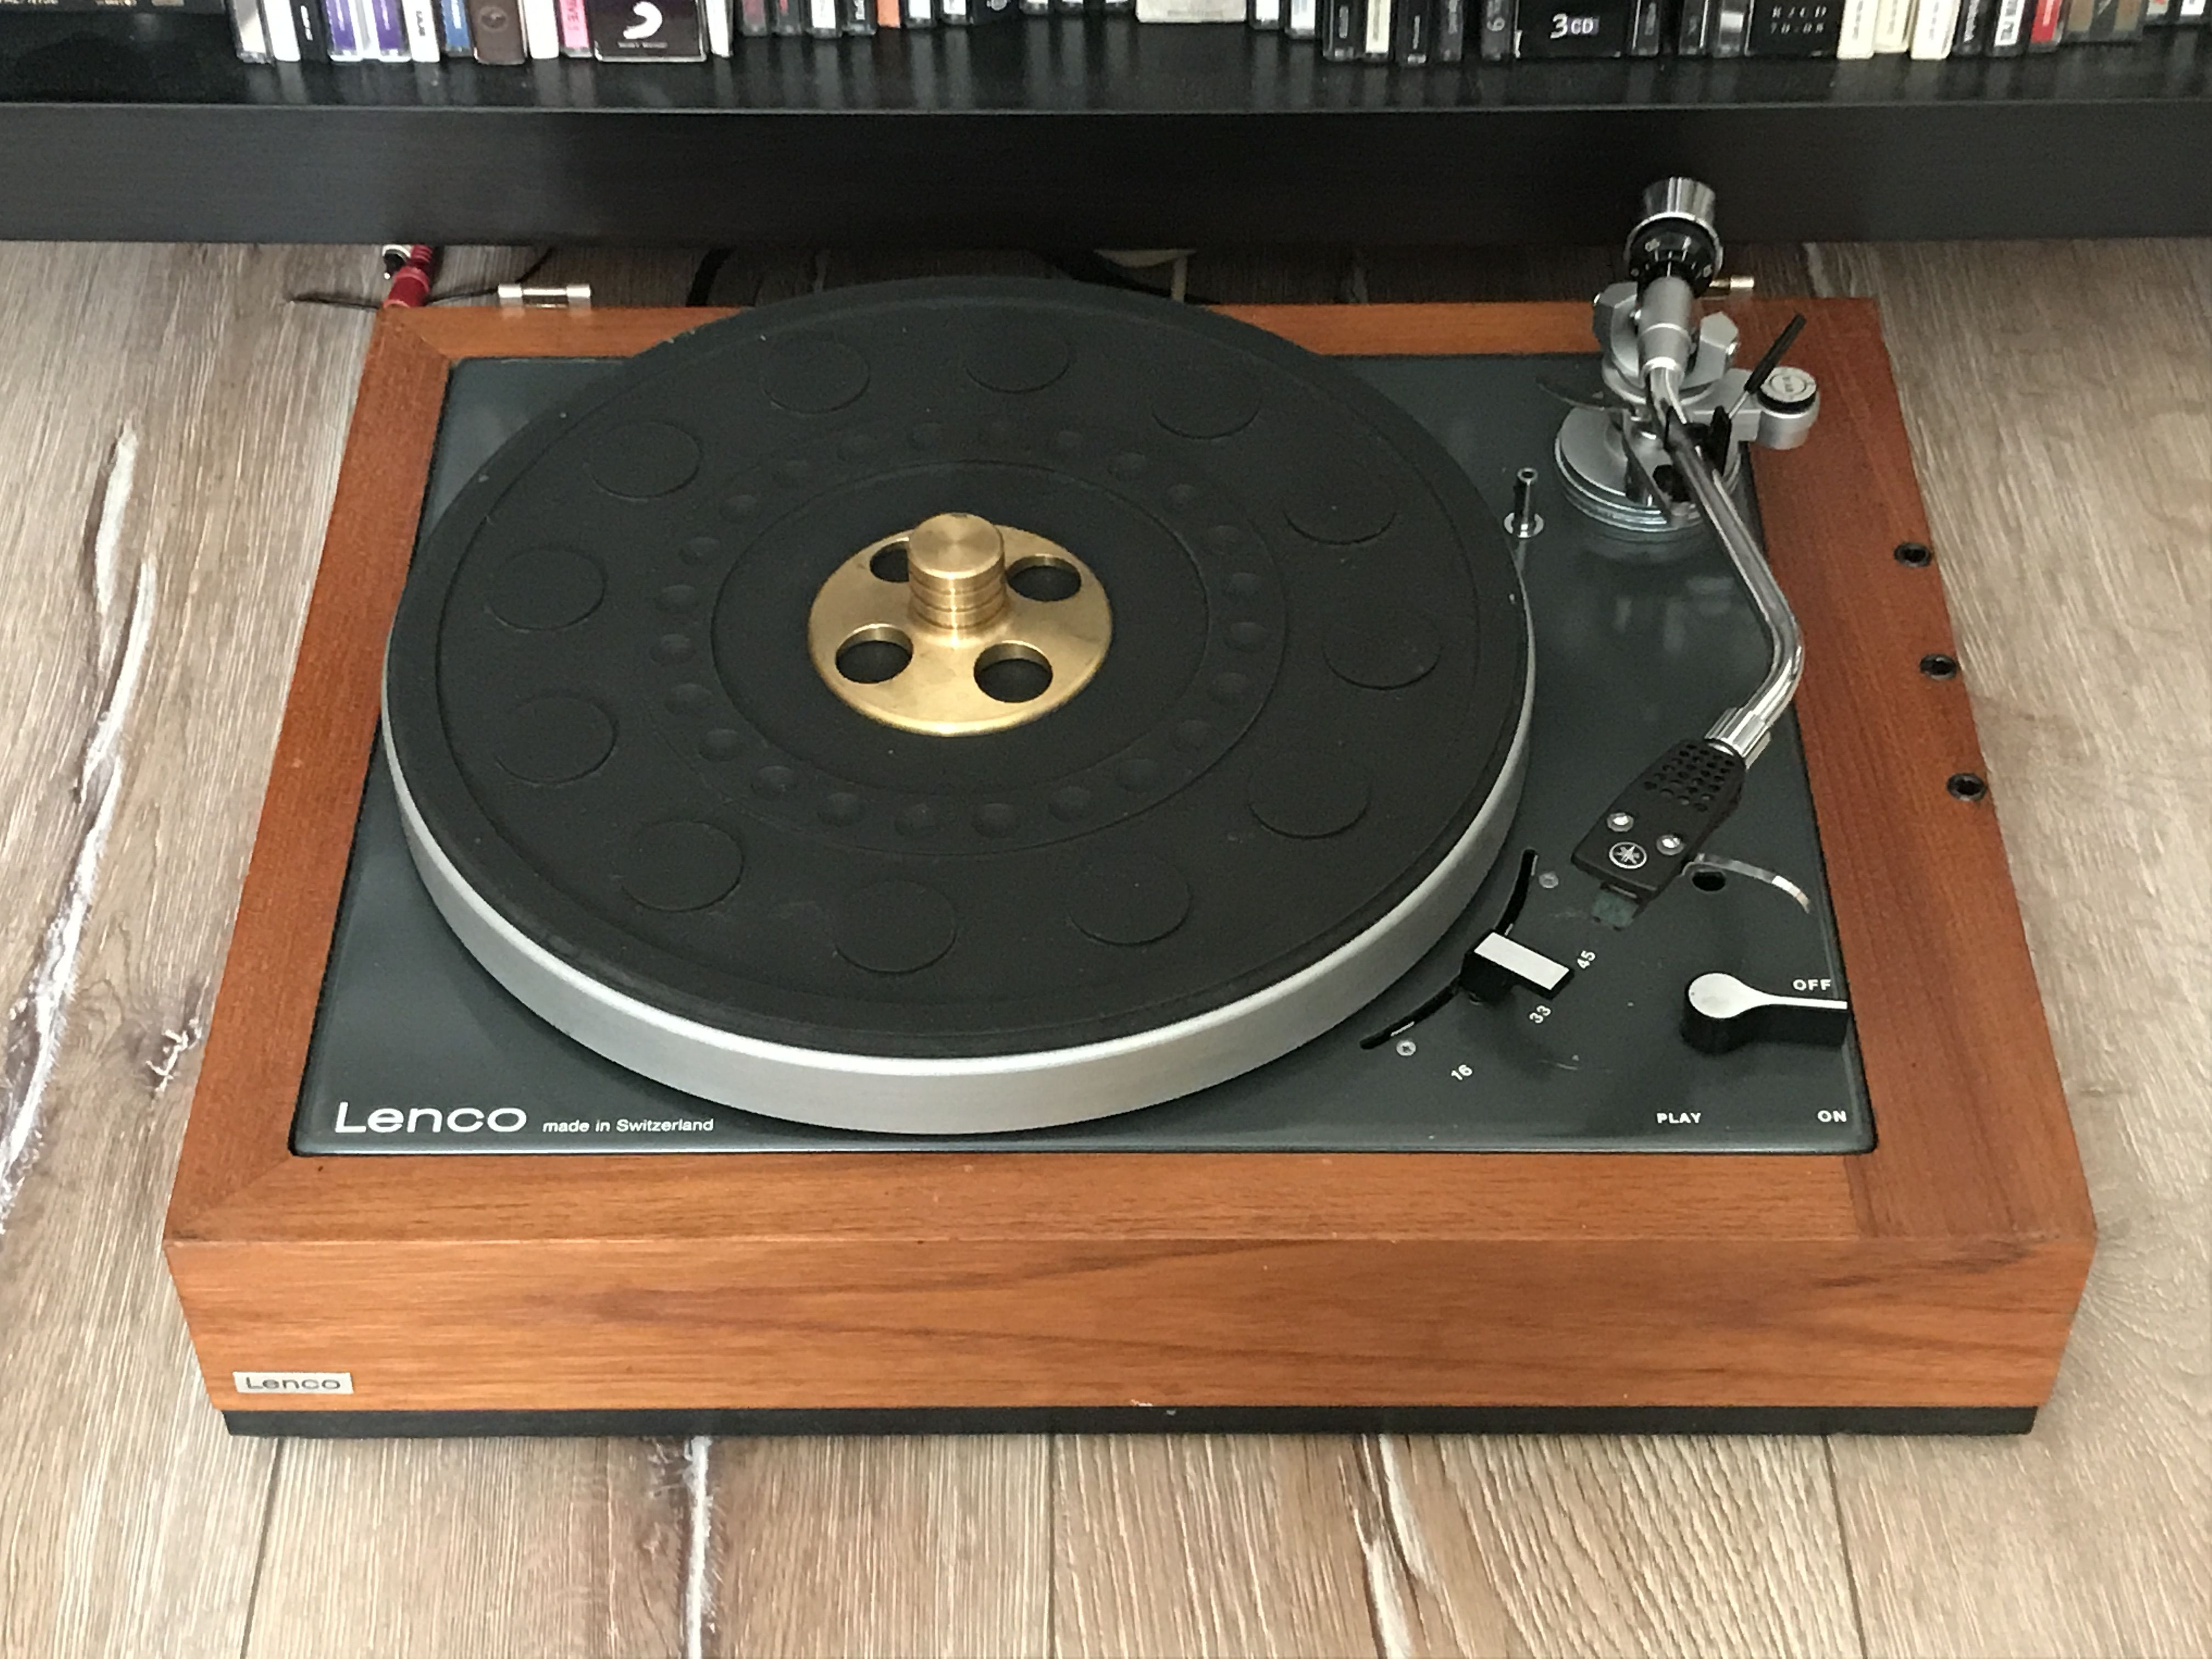 Lenco Turntable Electronics Projects Diy Vintage Electronics Diy Electronics